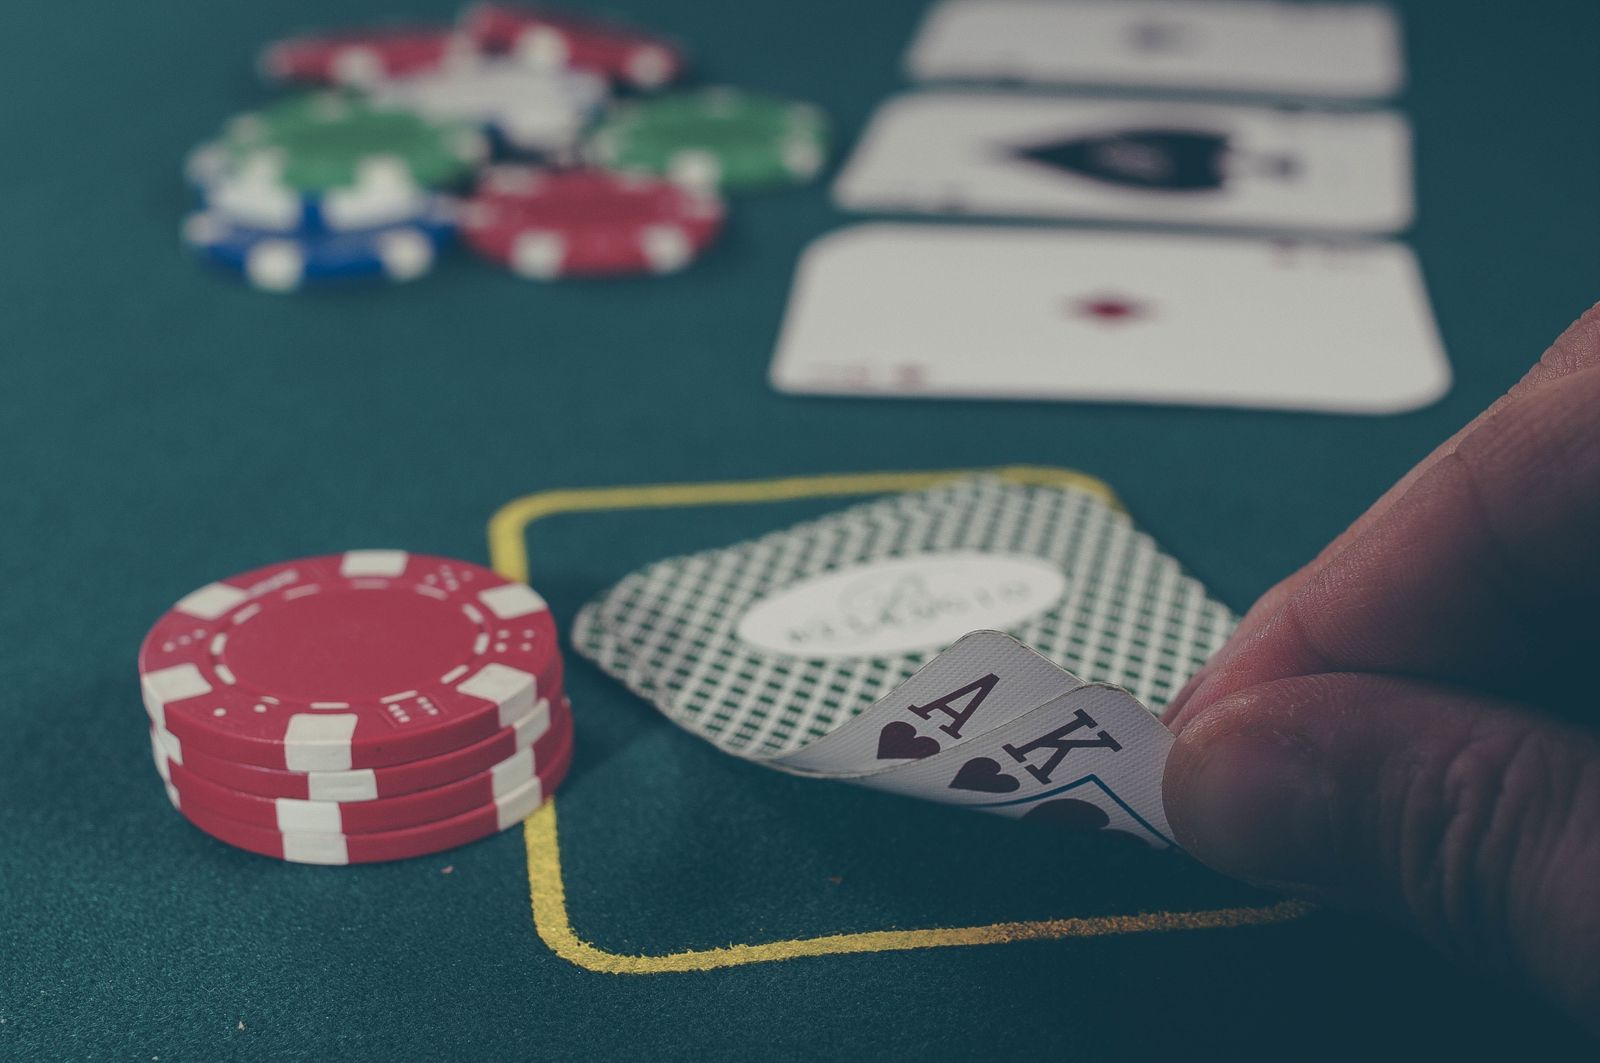 The Right Way To Lose Money With Casino